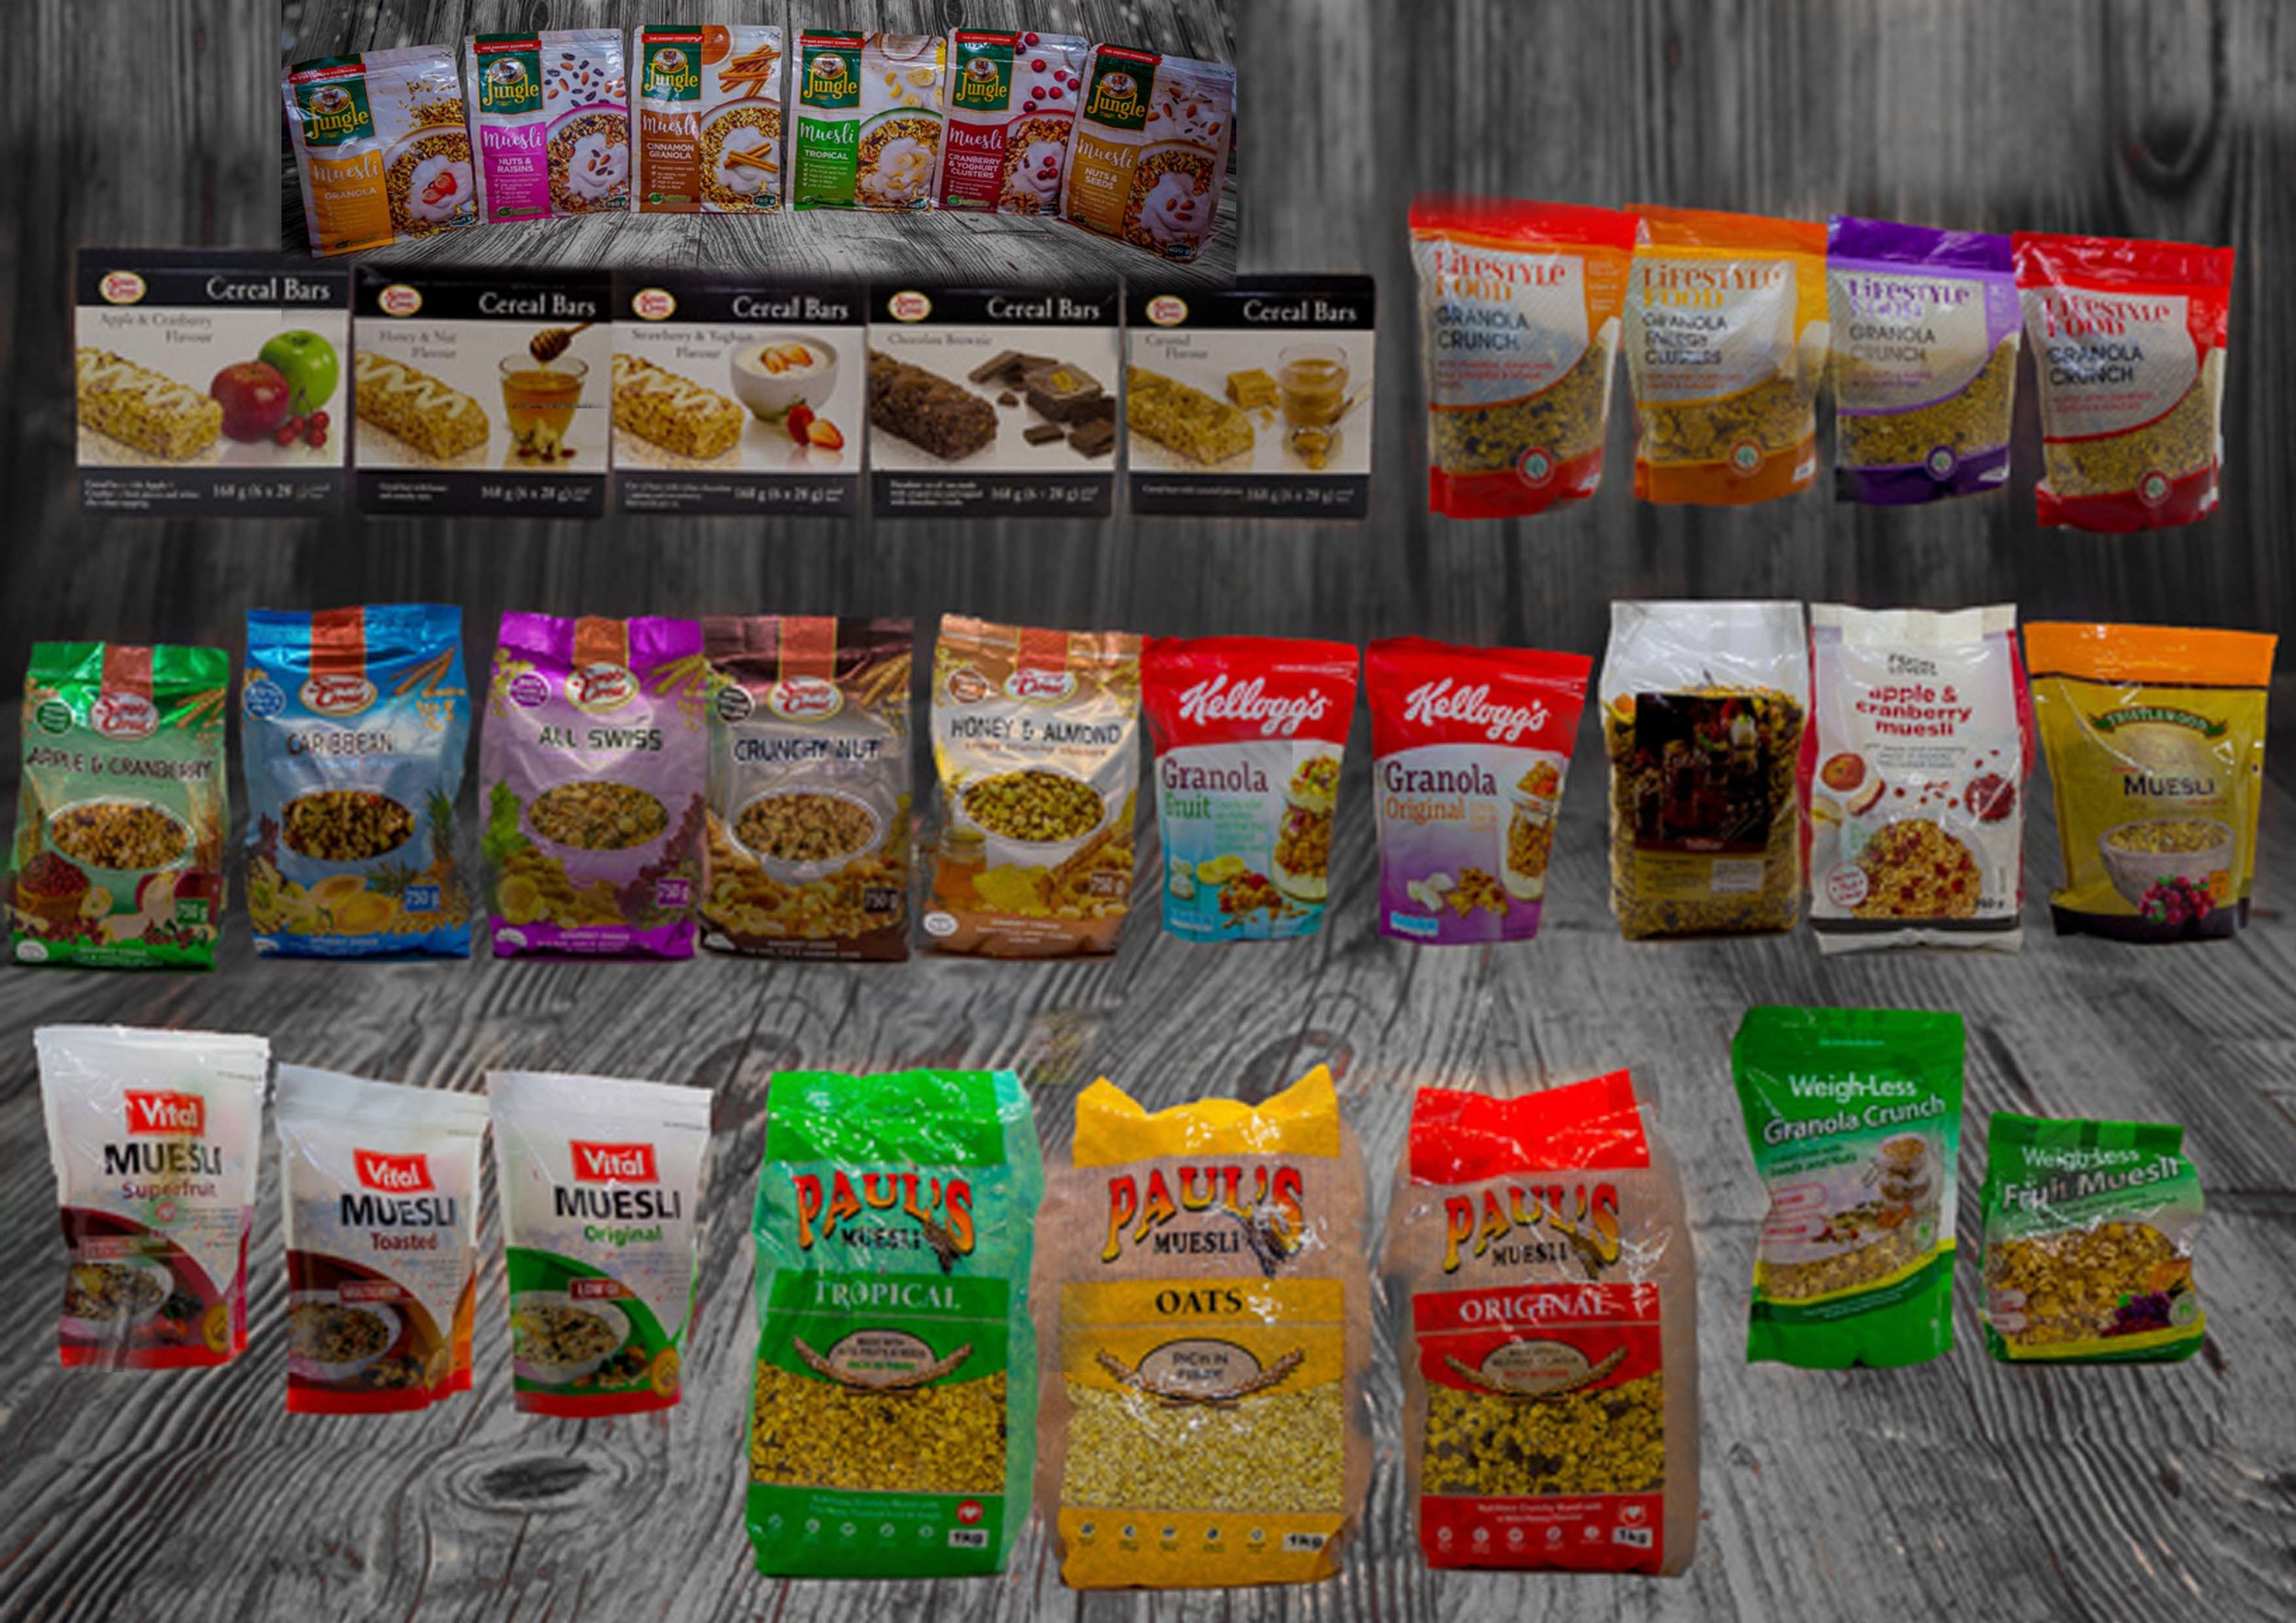 Some of Our Clients - Quality Manufactured Wholesome Products